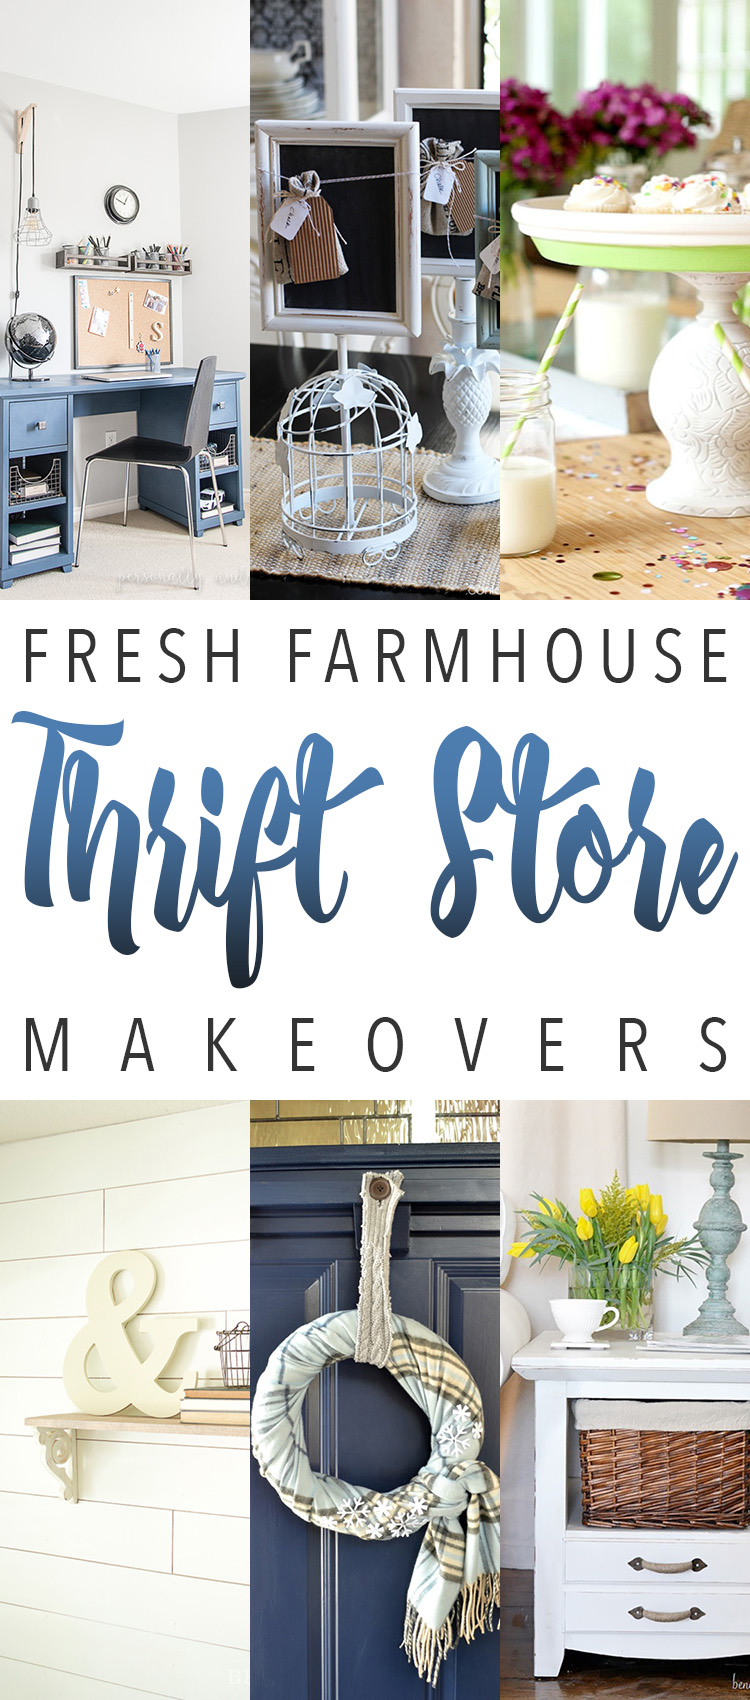 http://thecottagemarket.com/wp-content/uploads/2016/12/Thrift-TOWER-0001.jpg